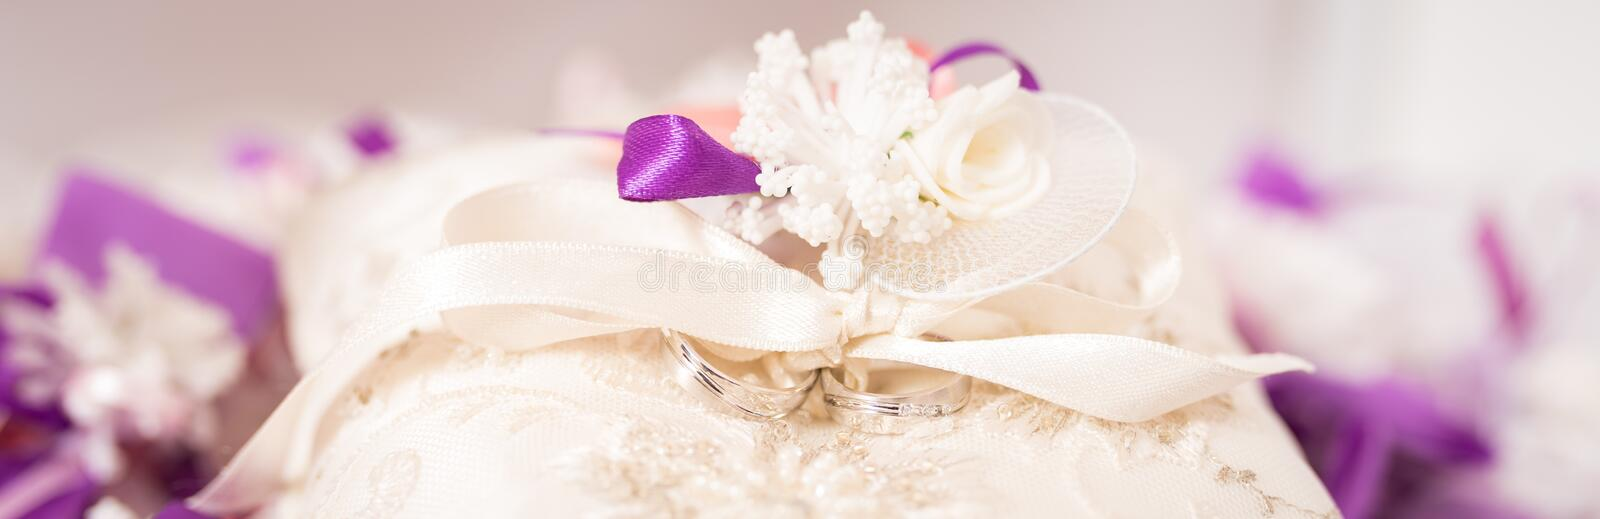 Wedding rings on a decorative cushion royalty free stock images